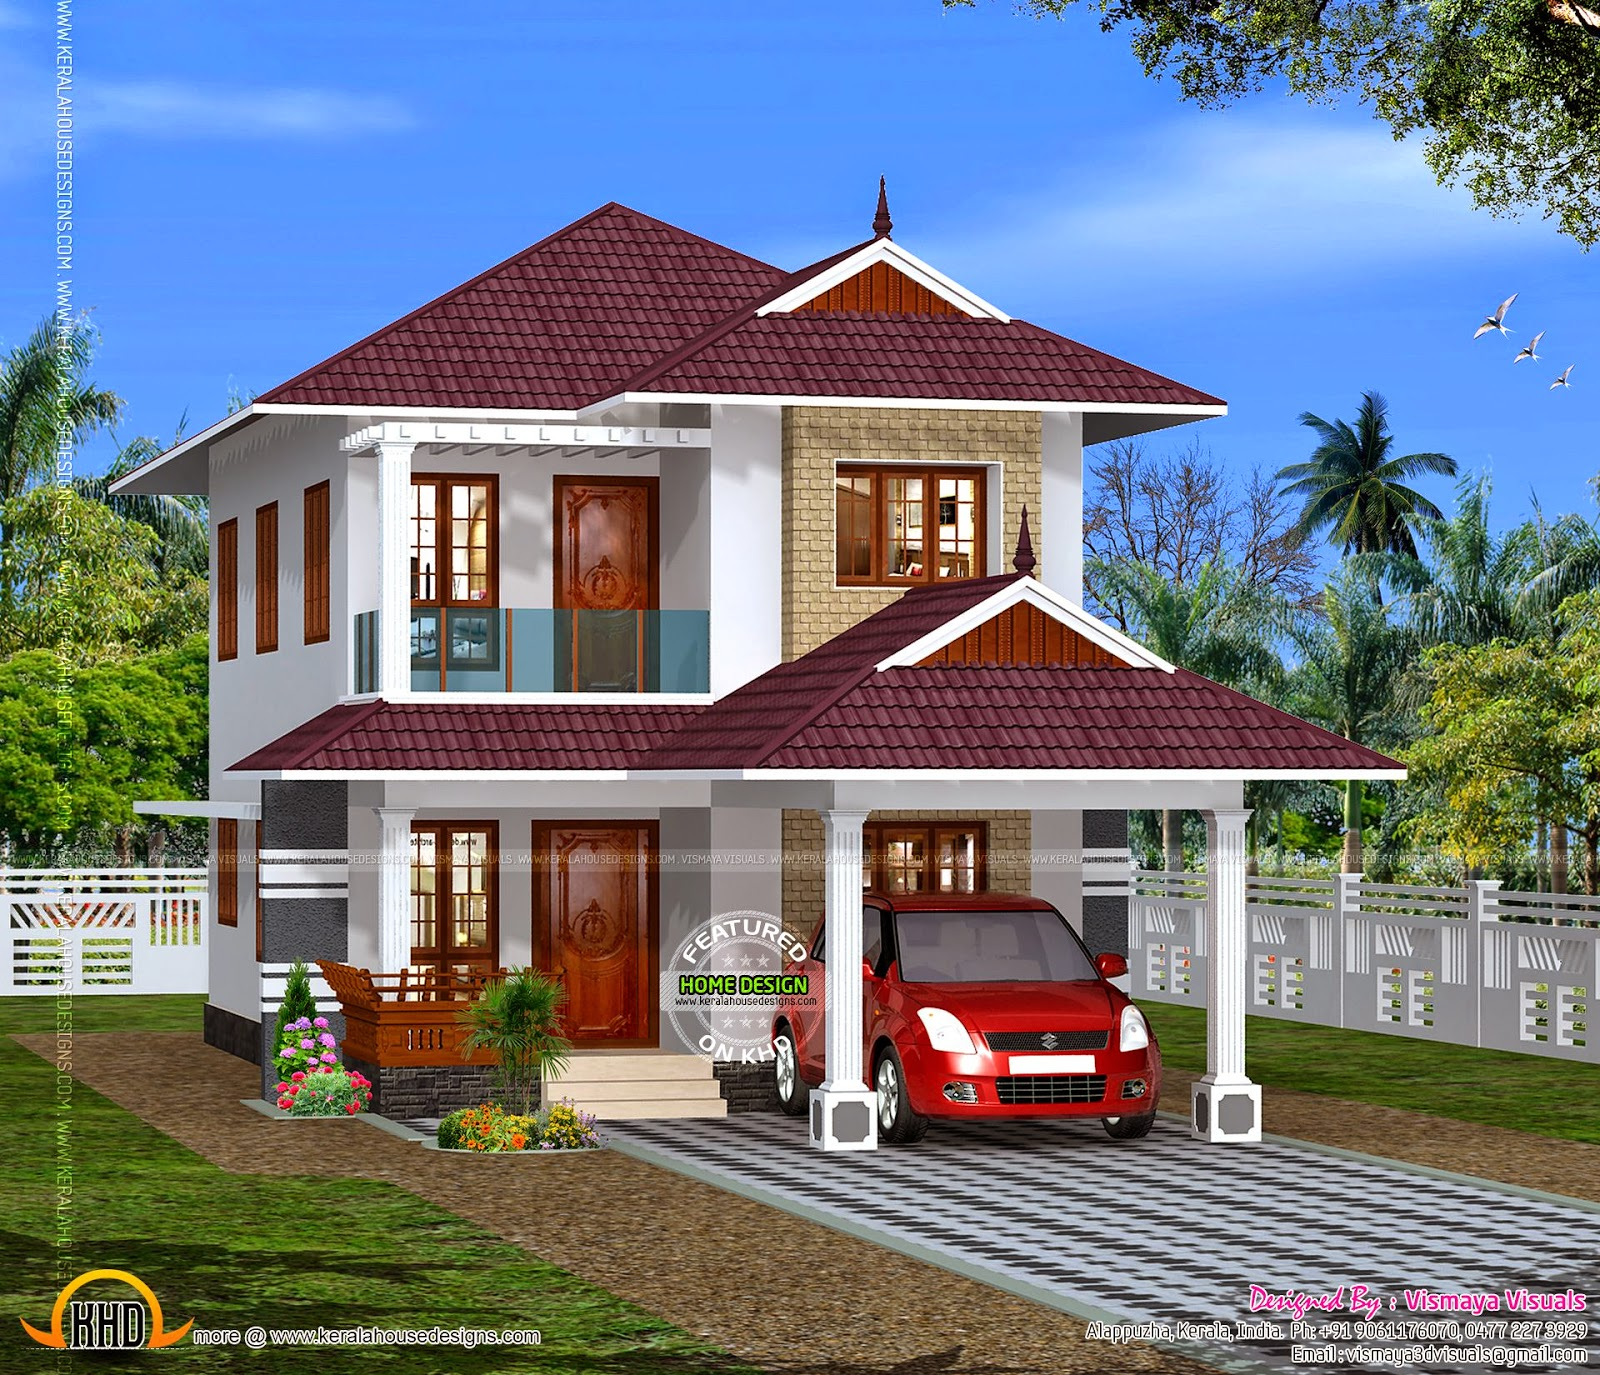 house plans designs colonial colonial house plans photos small colonial house floor plans small colonial house plans small